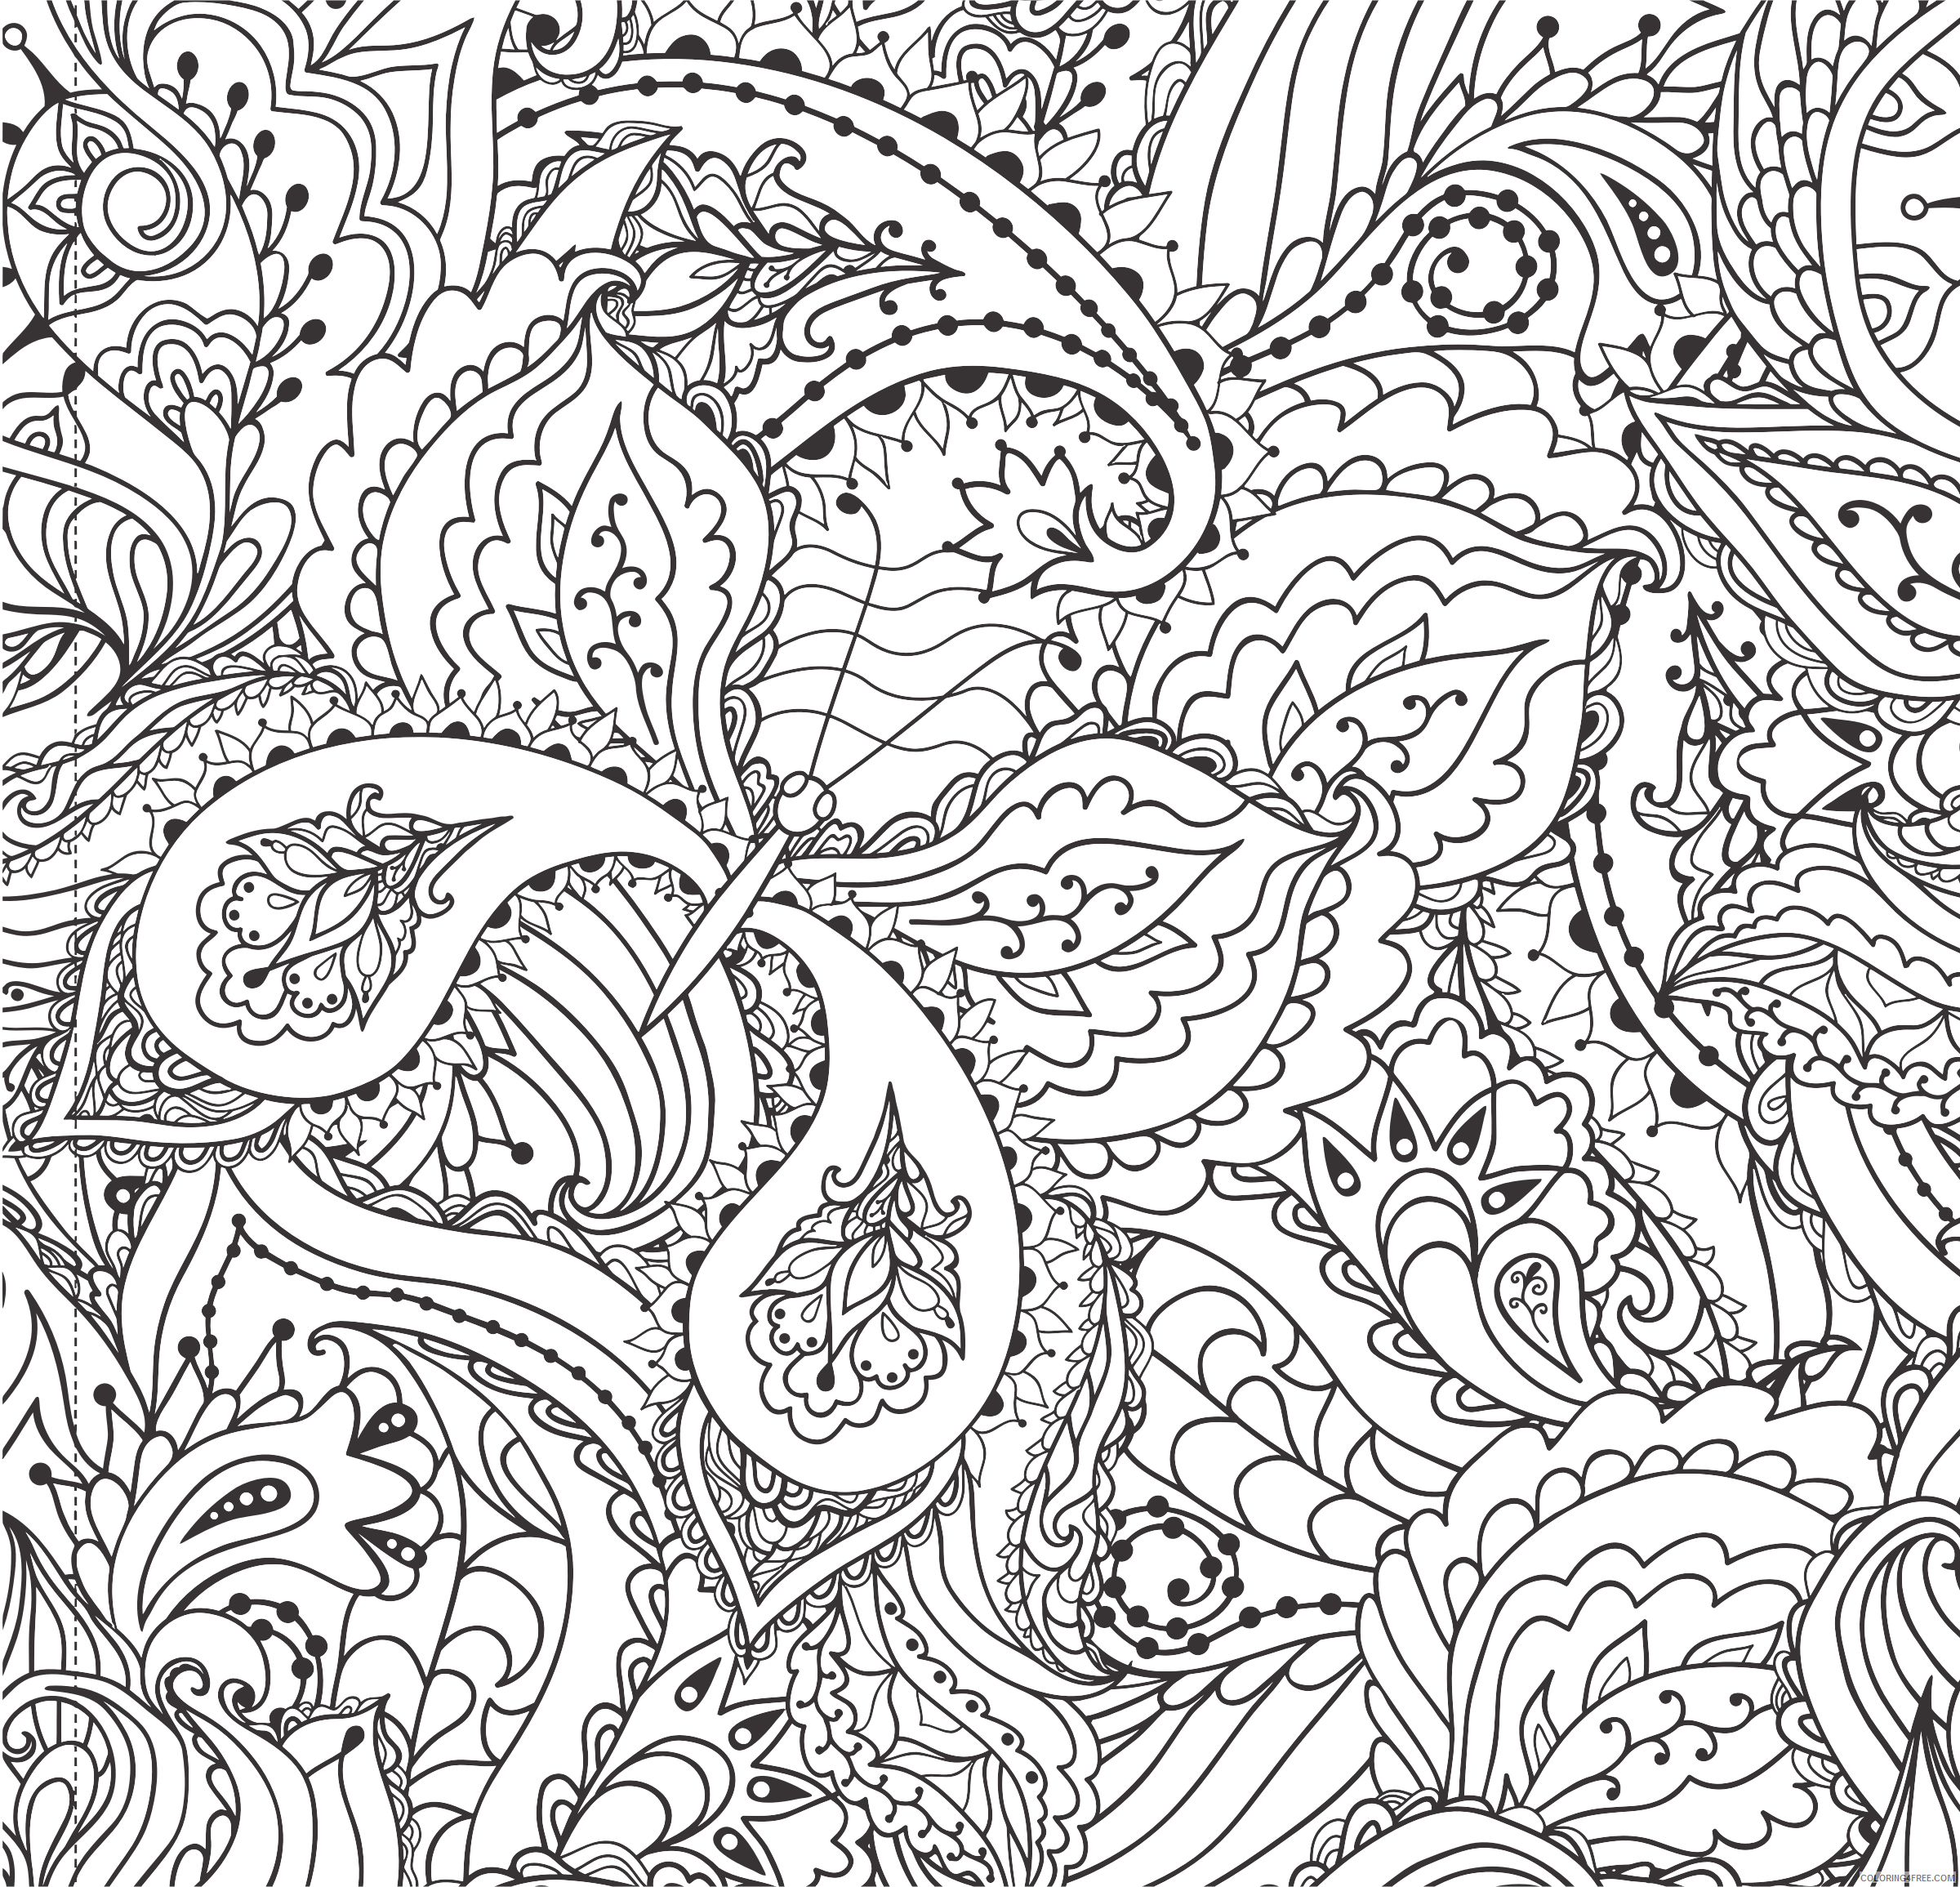 Butterfly Line Art Coloring Pages decorative floral butterfly line art Printable Coloring4free